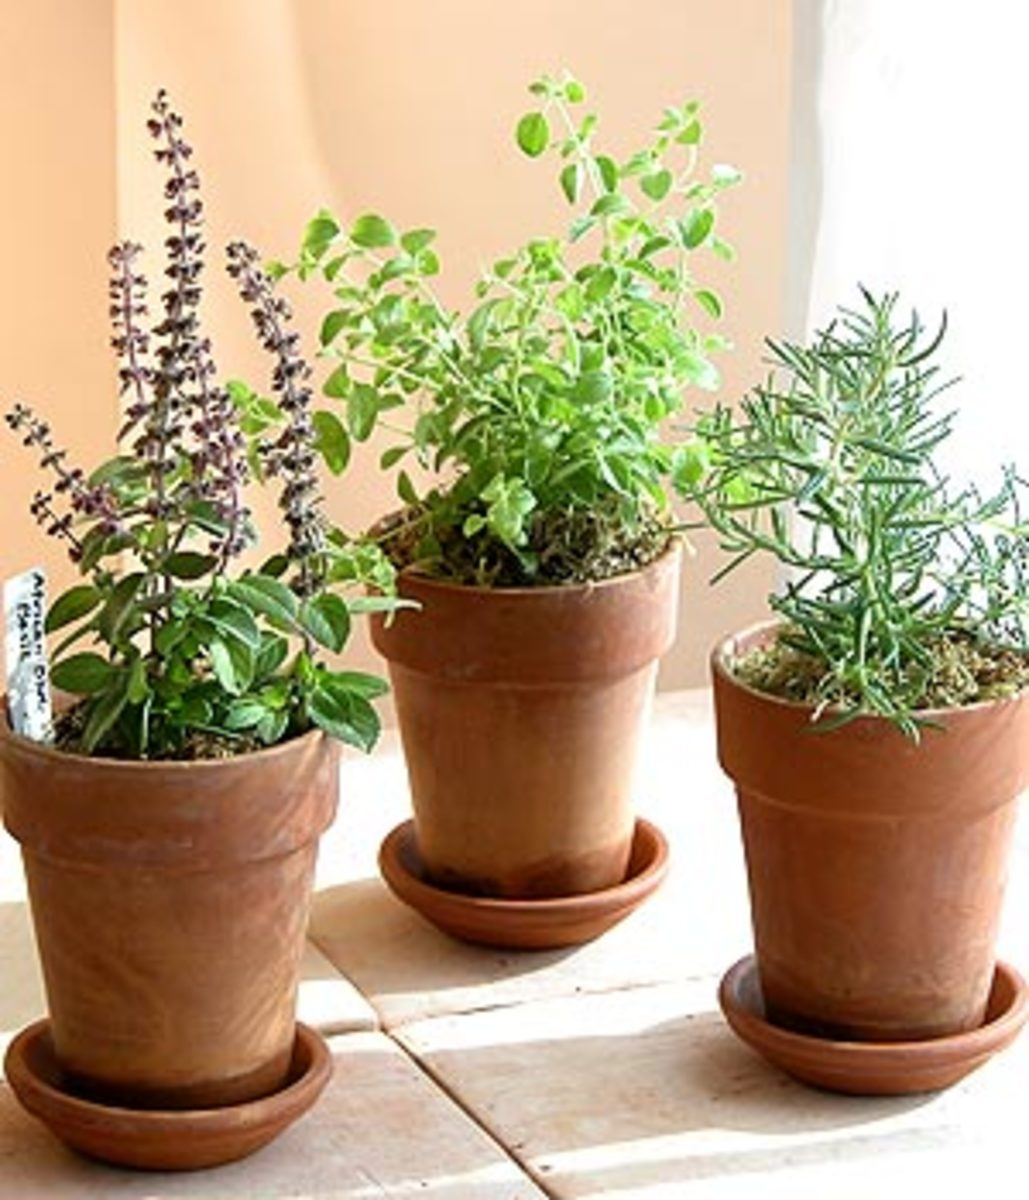 Pots of herbs are a great favor and centerpiece!